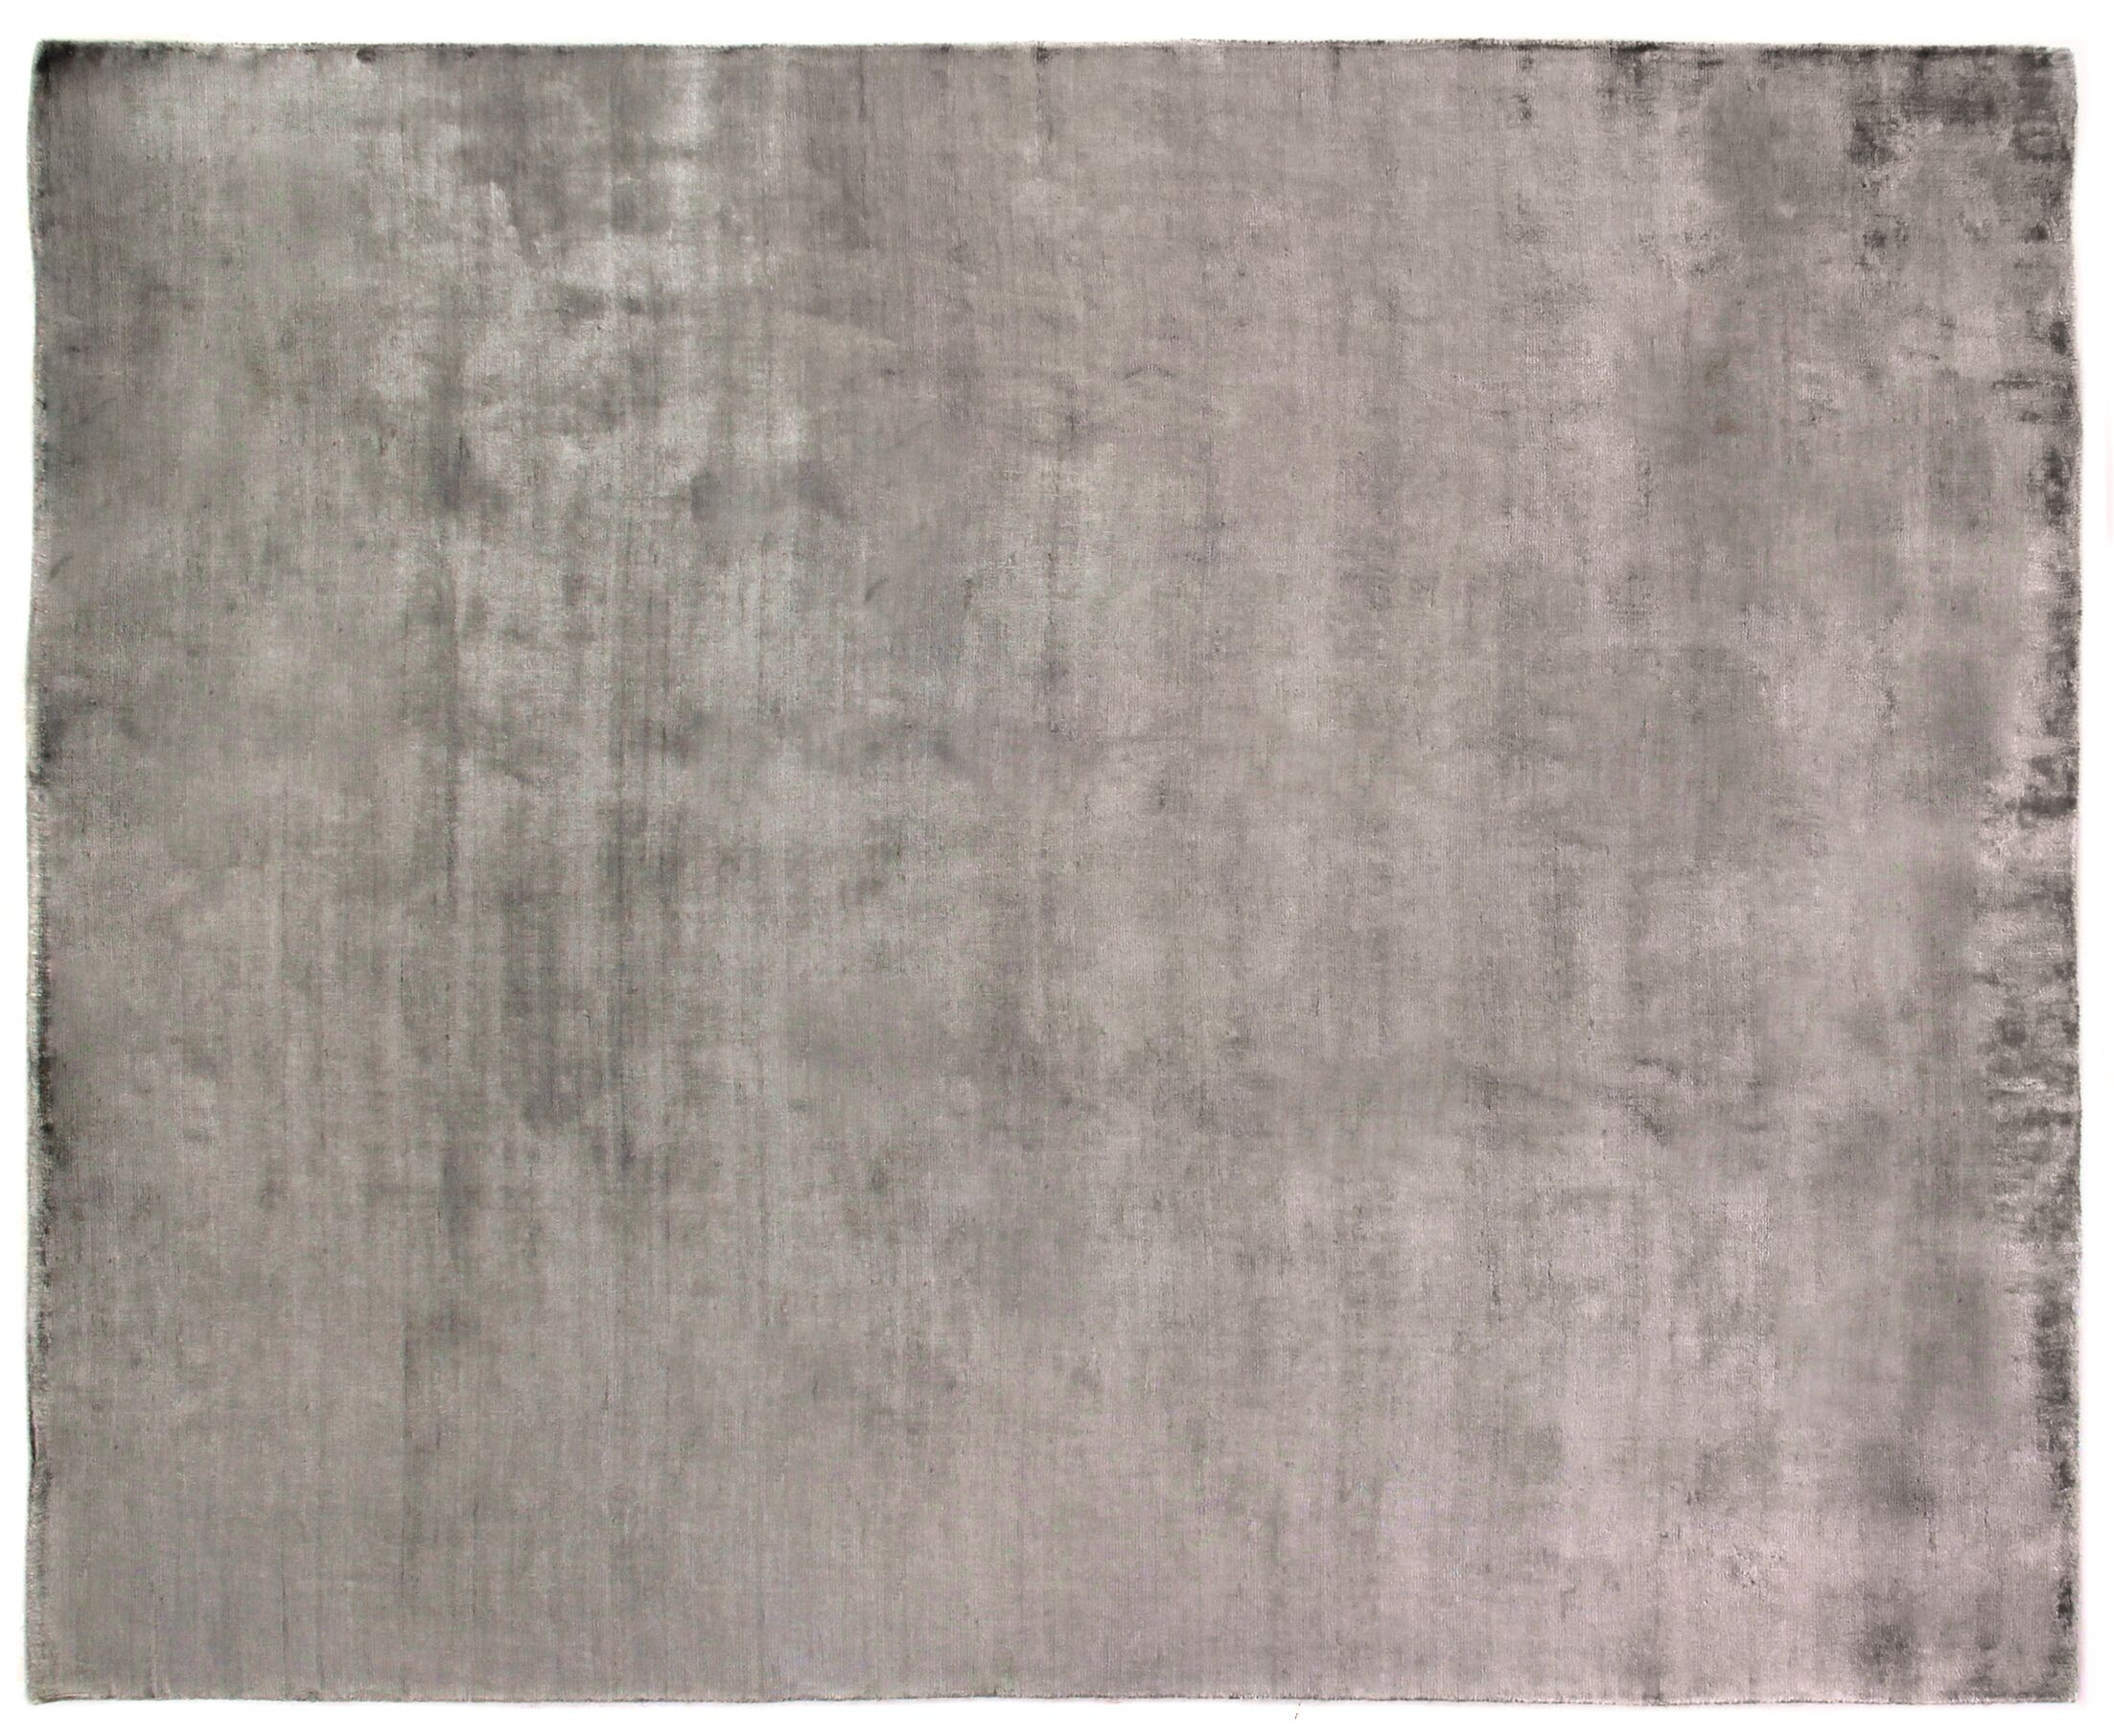 Purity Hand-Woven Gray Area Rug Rug Size: Rectangle 12' x 15'